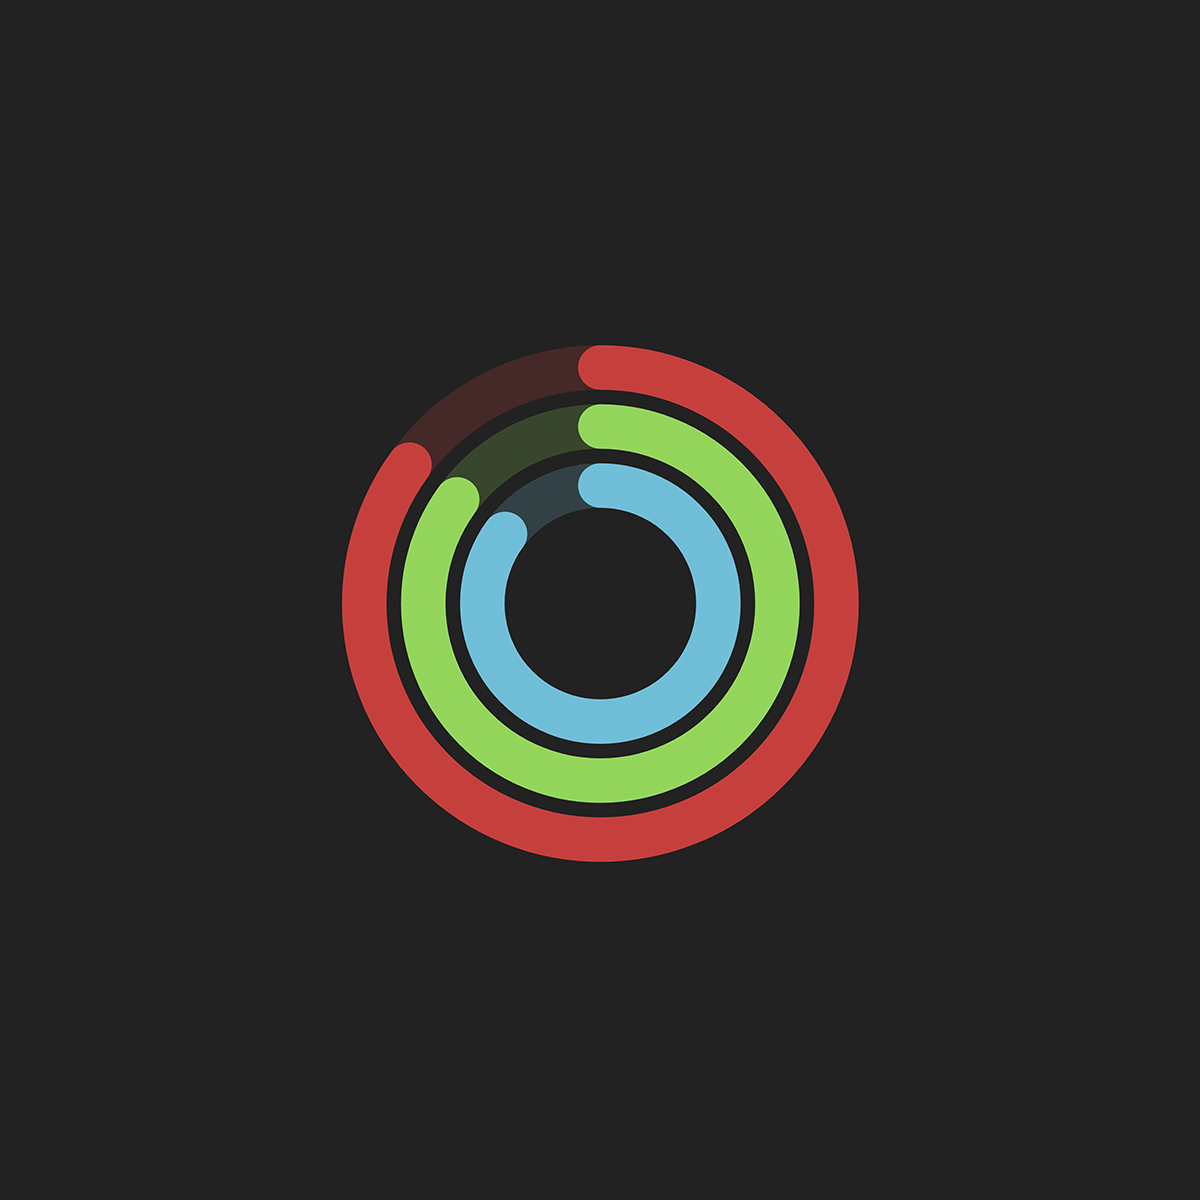 Chilitime Design - Building Activity Rings with SVG